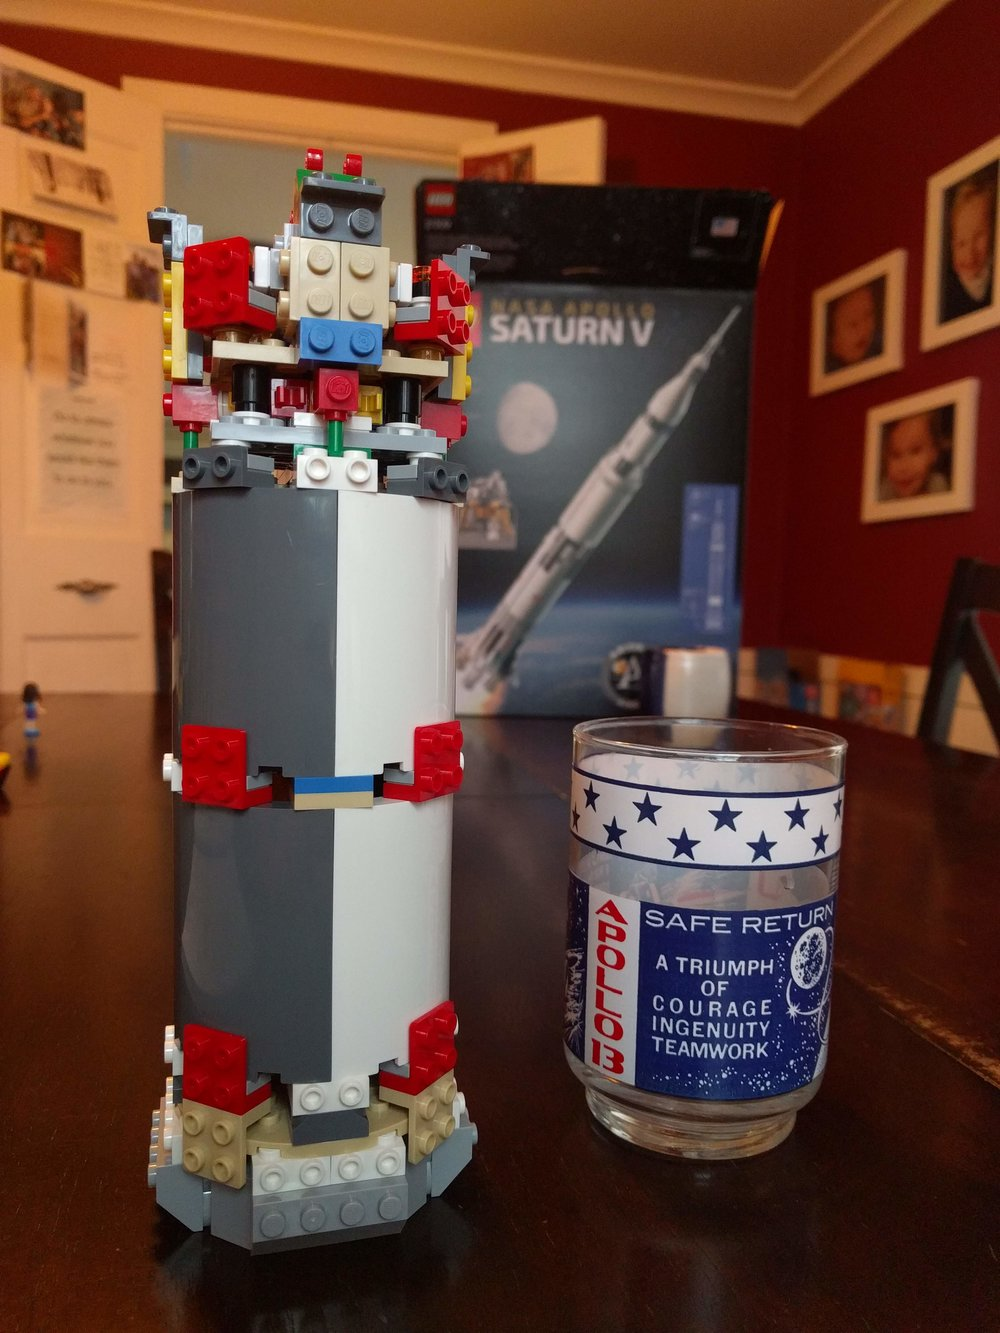 S-II (second stage) under construction, with an Apollo 13 glass for scale.